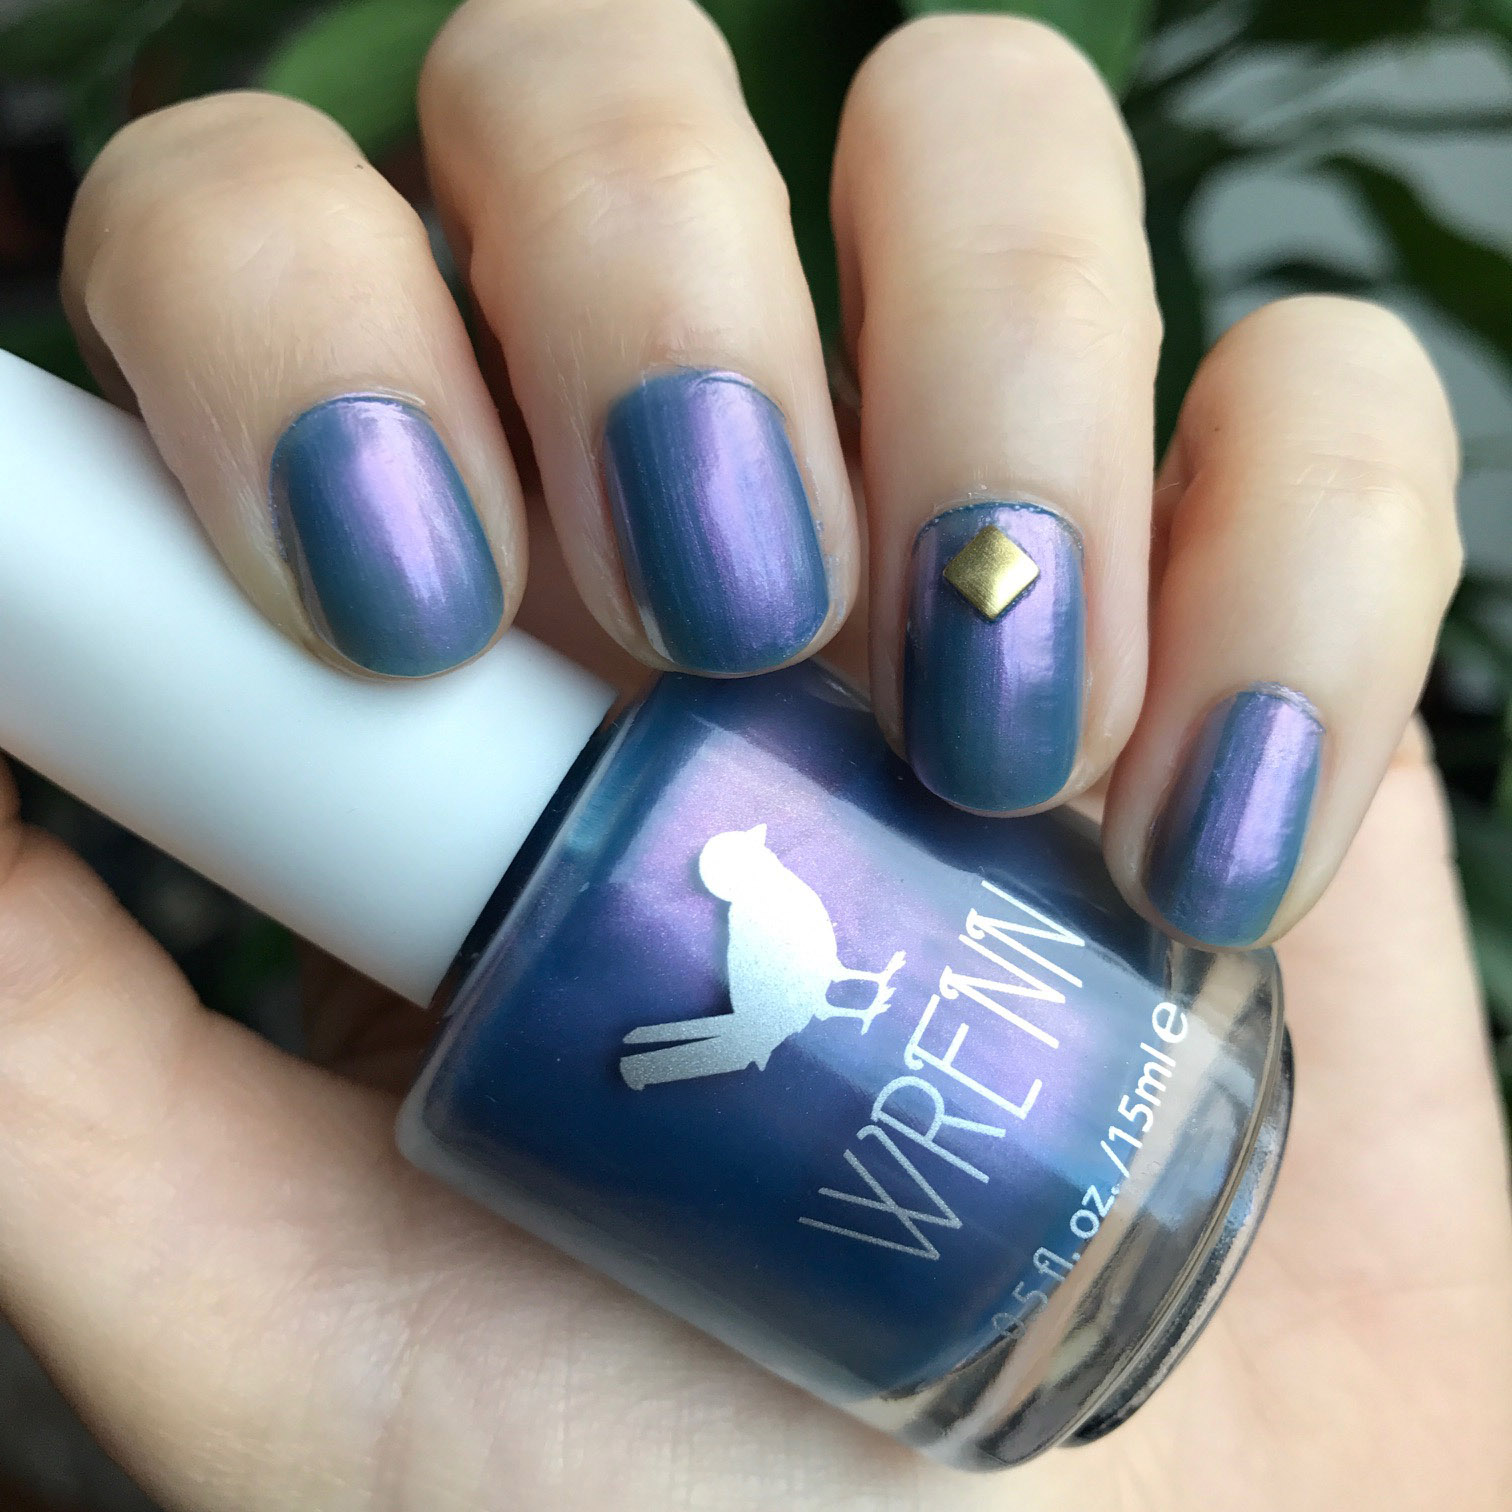 Shop Wrenn PeriTwinkle nail polish